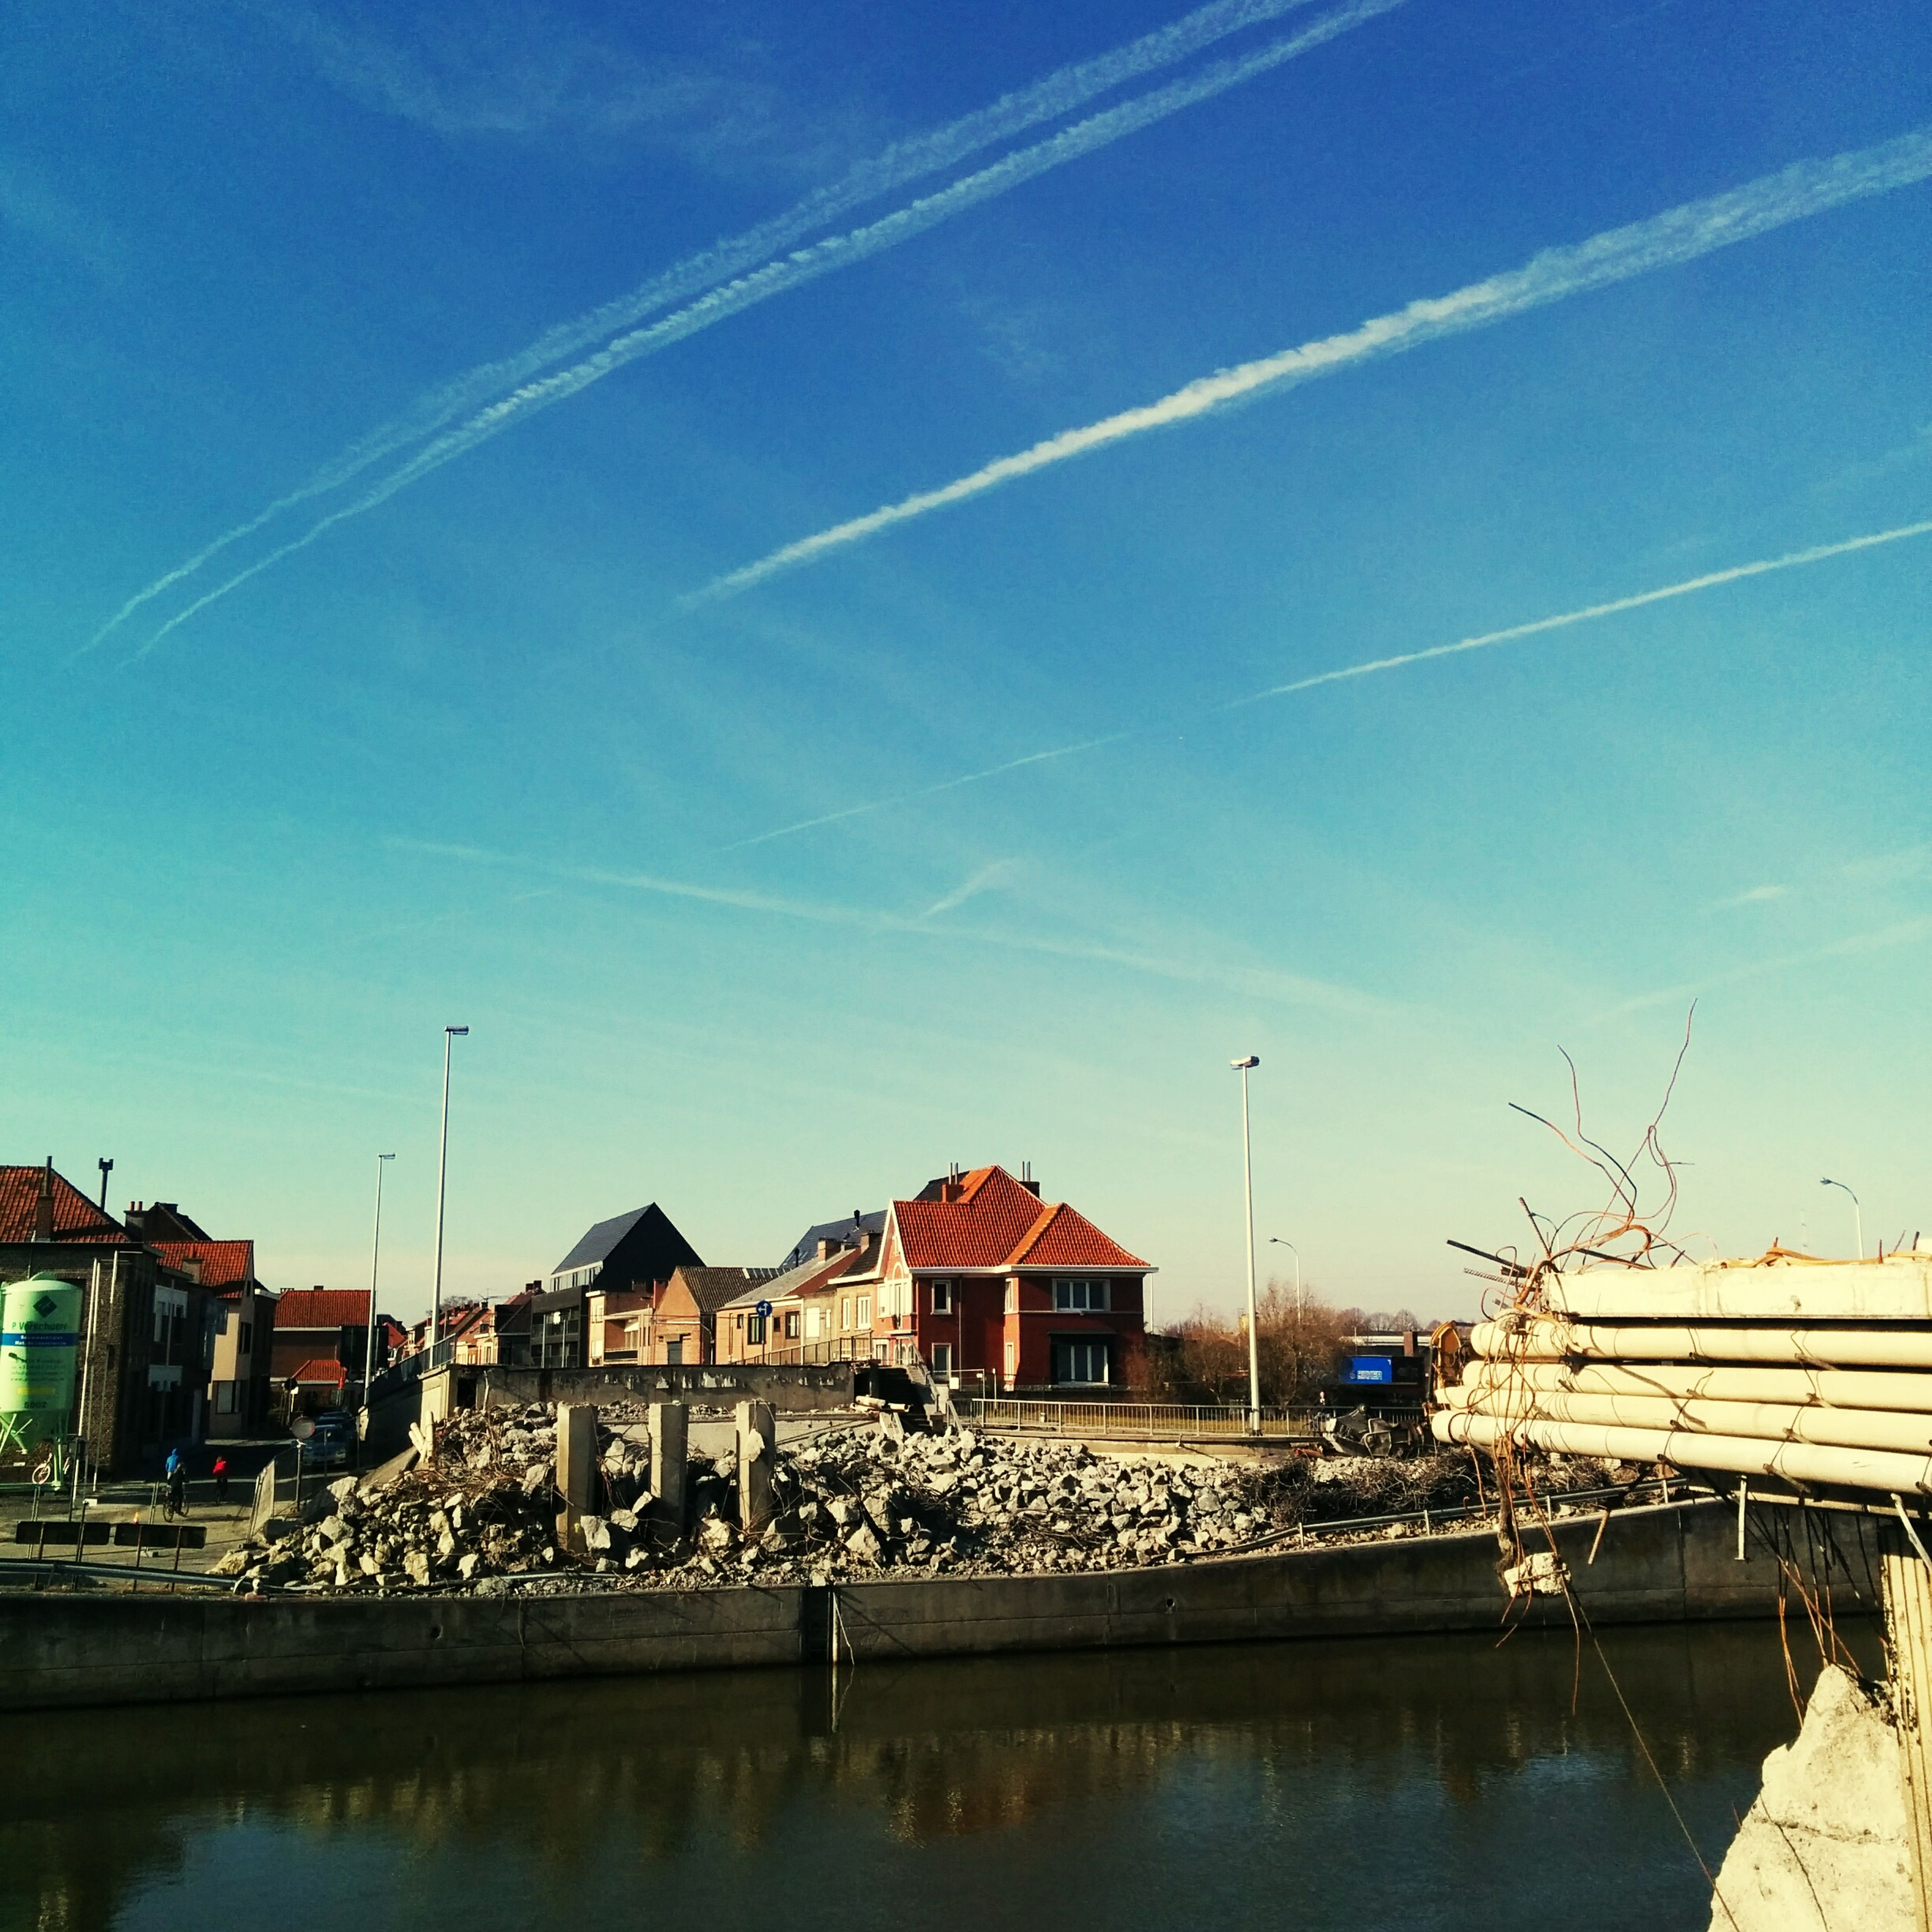 building exterior, built structure, architecture, water, blue, house, waterfront, sky, reflection, residential structure, residential building, town, river, residential district, harbor, outdoors, canal, city, day, lake